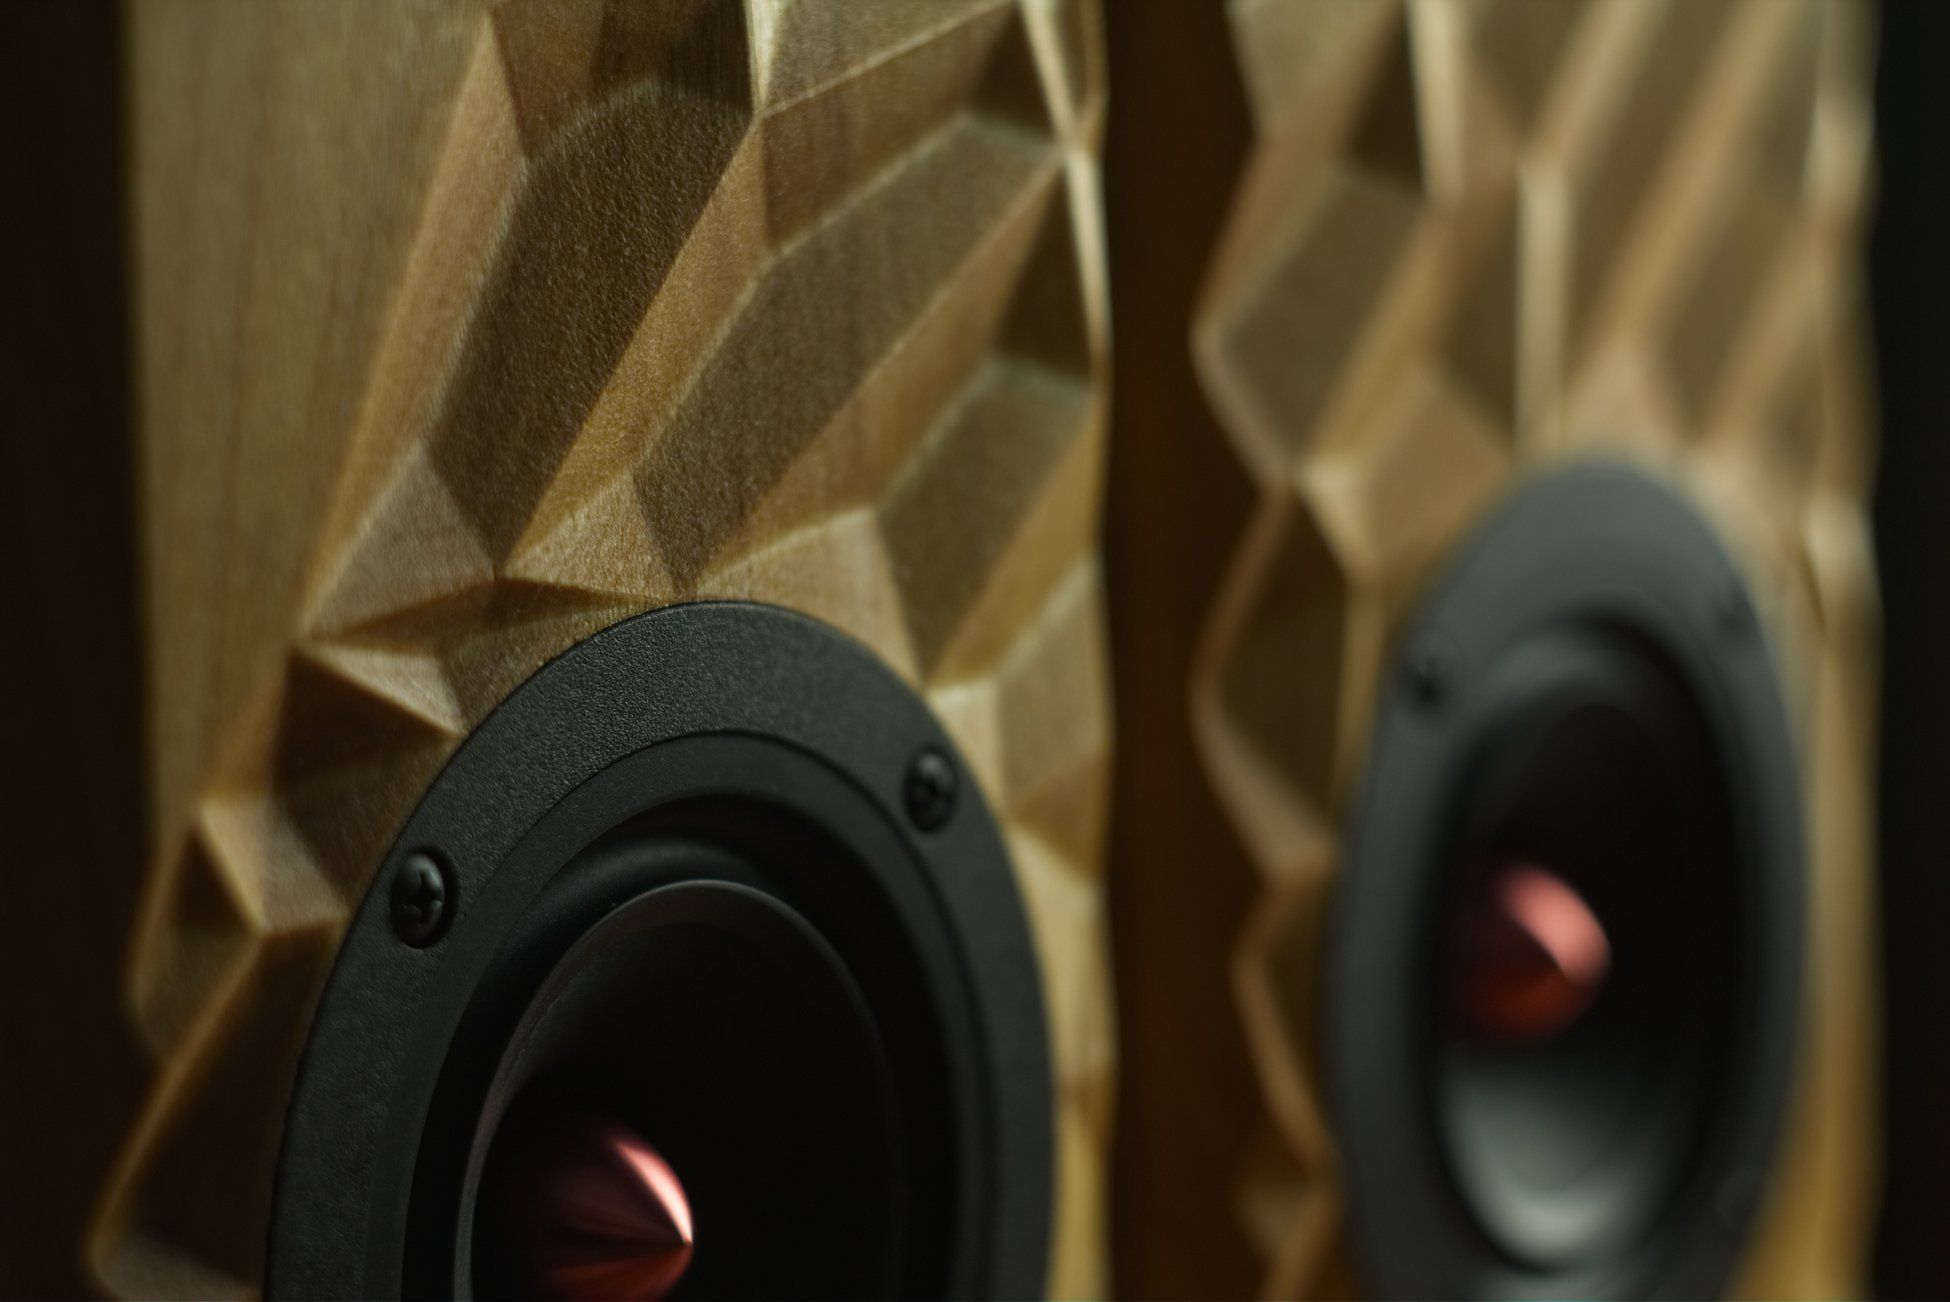 The best DIY speaker kits and hardwood speaker cabinet kits you can